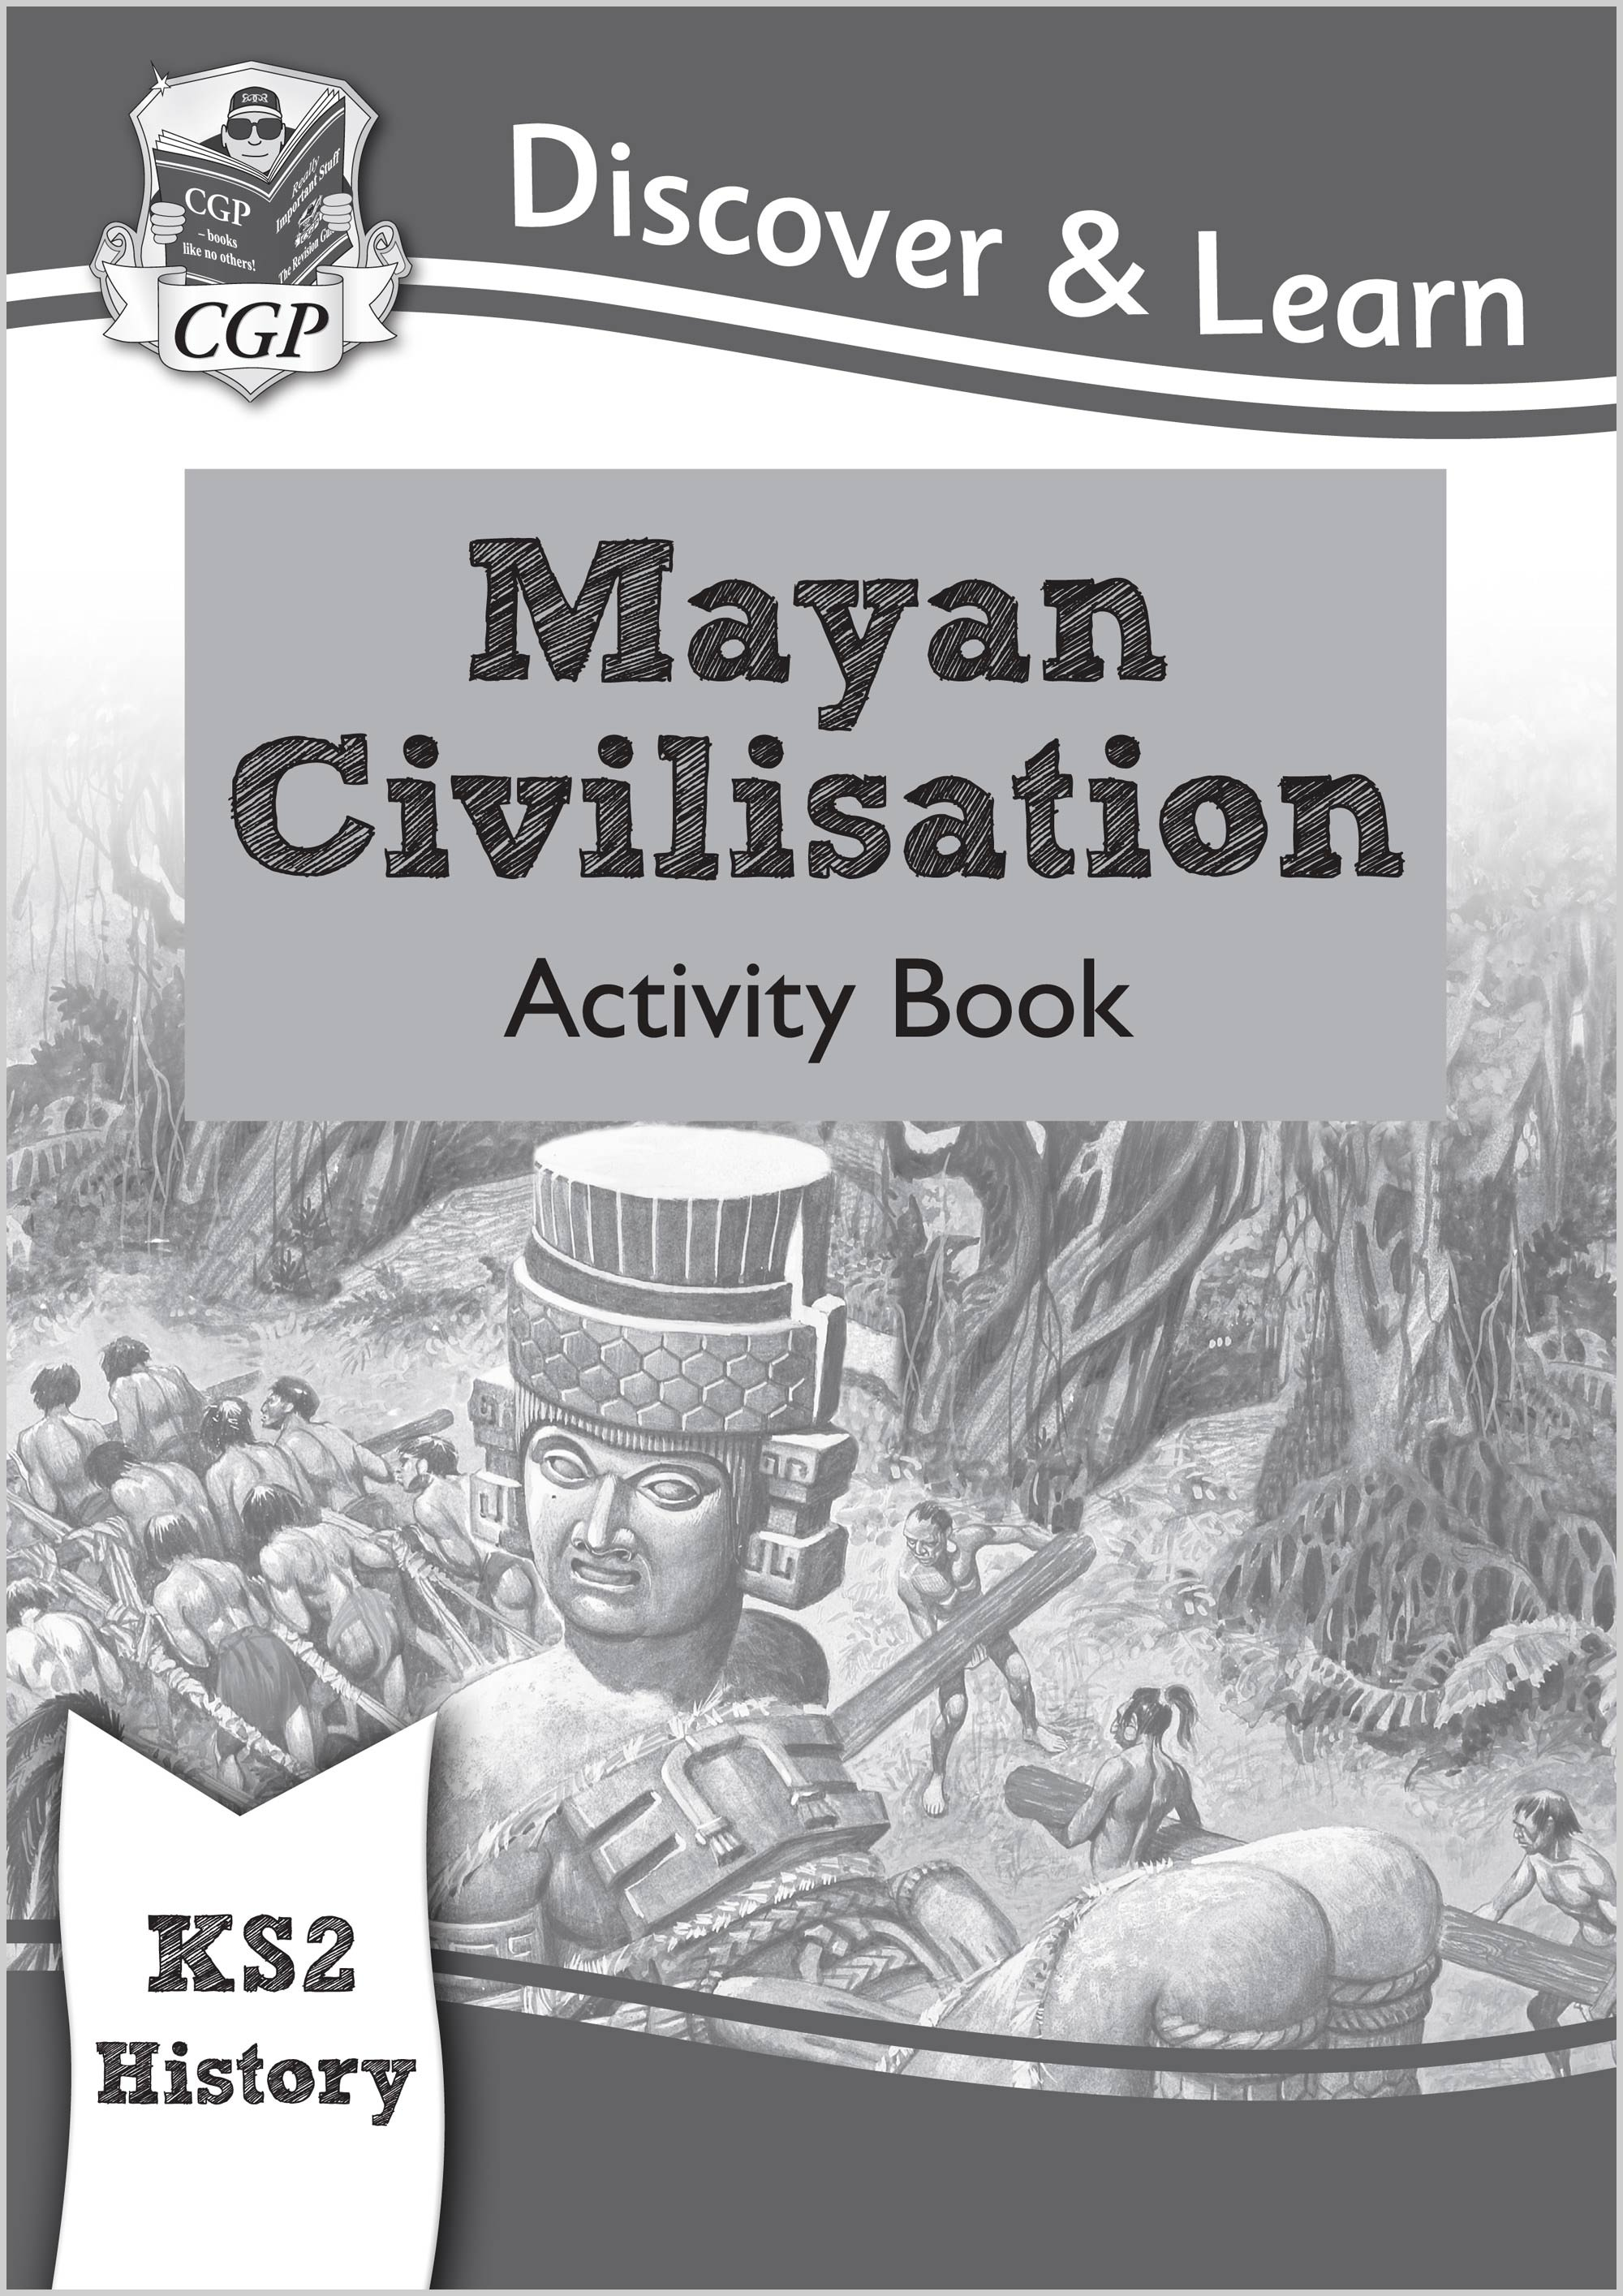 HMW21 - KS2 Discover & Learn: History - Mayan Civilisation Activity Book